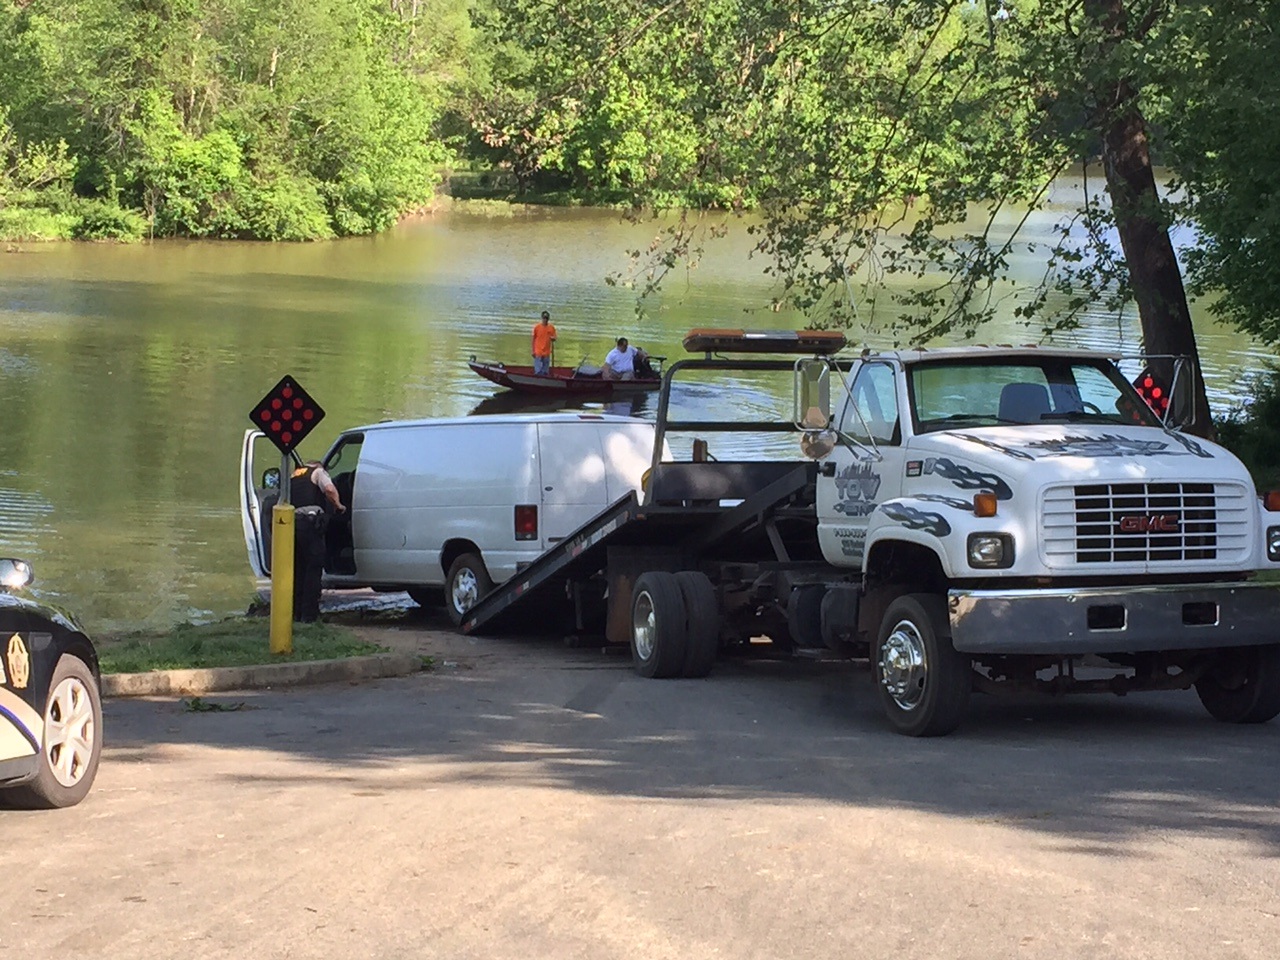 cherokee co car out of water_174440